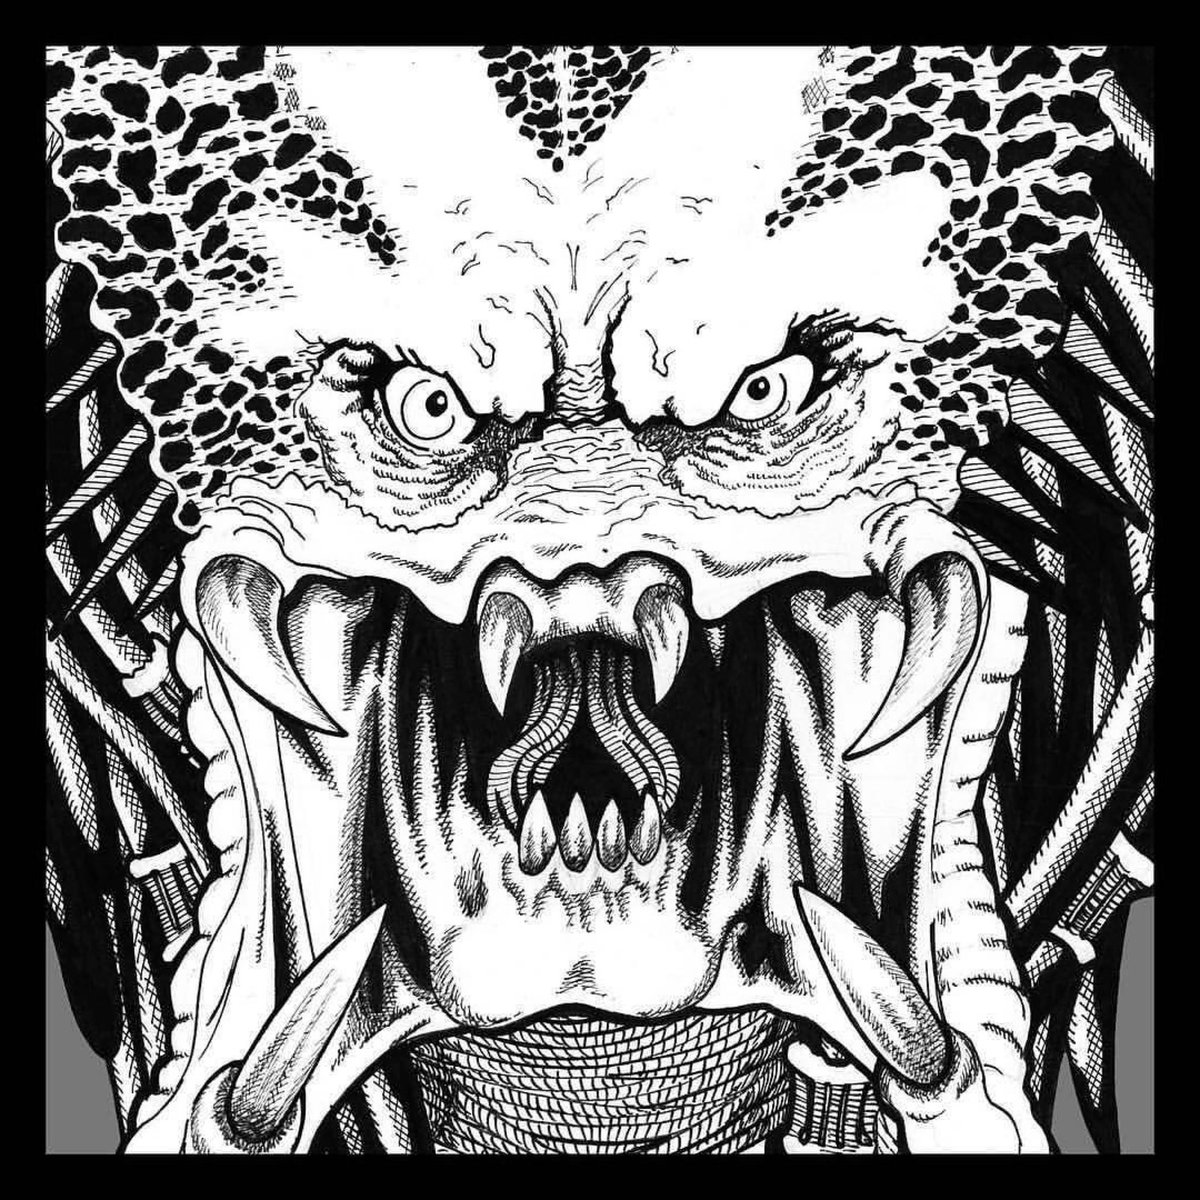 One of these days I'll color this thing! #fbf to the PREDATOR I did a few years back!  #Predator #gettodachoppa #1987 #80smovies #scifi #myart #fanart #bigdogsstudio #moviemonsters #stanwinston #predatorrart #predators #predatormovie #predatorfanart